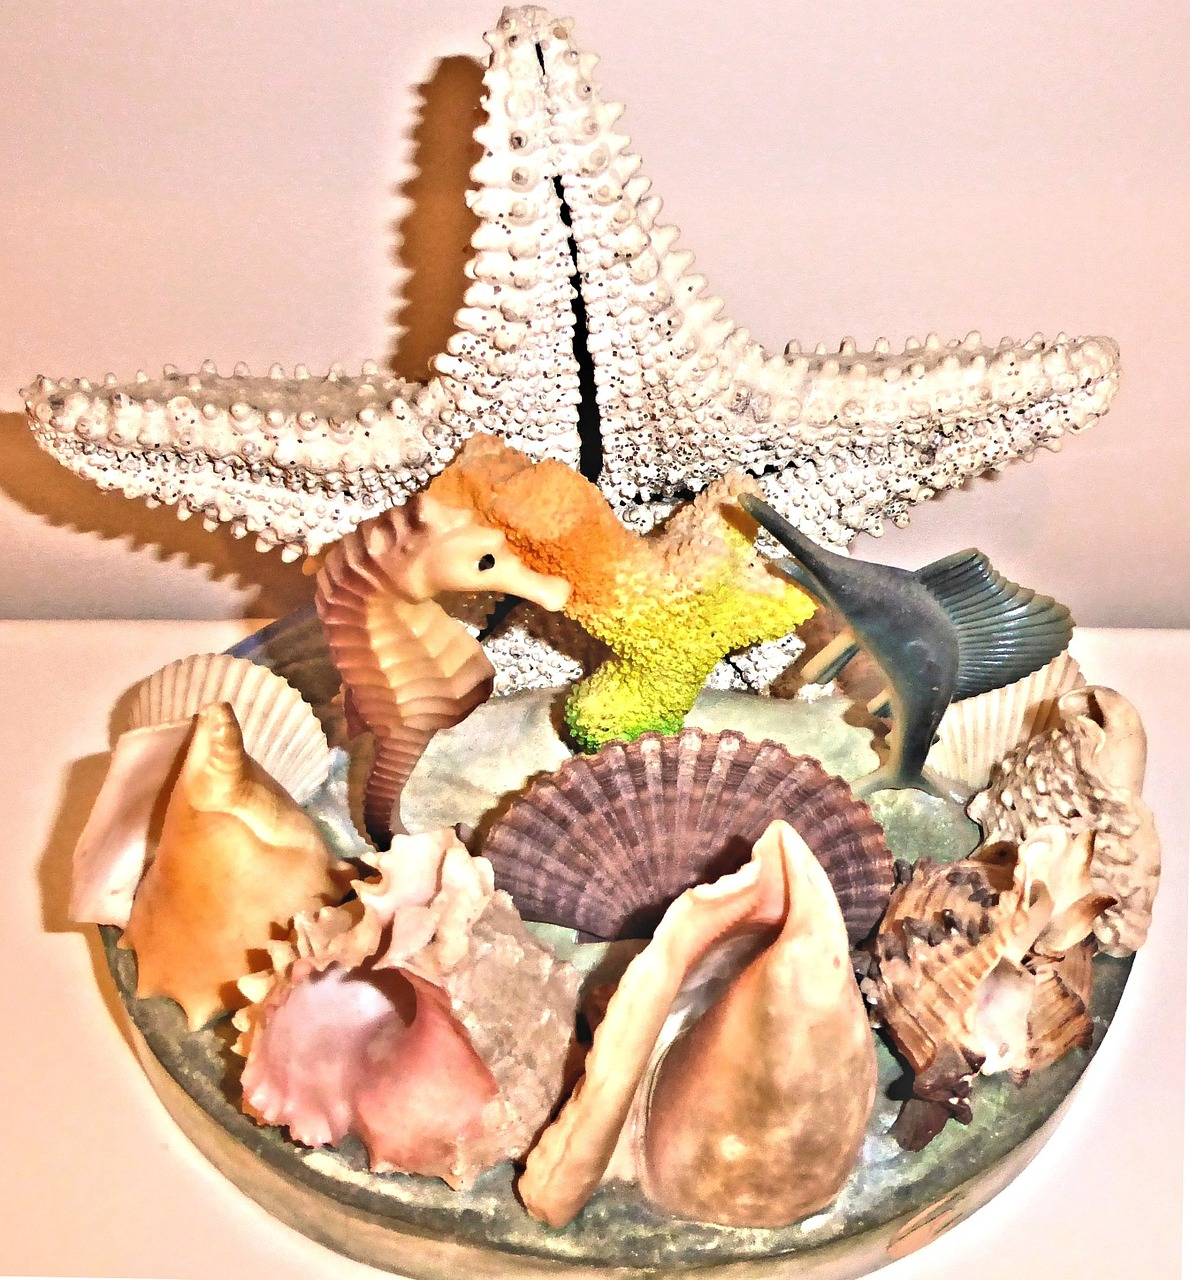 authentic-sea-shells-685141_1280.jpg